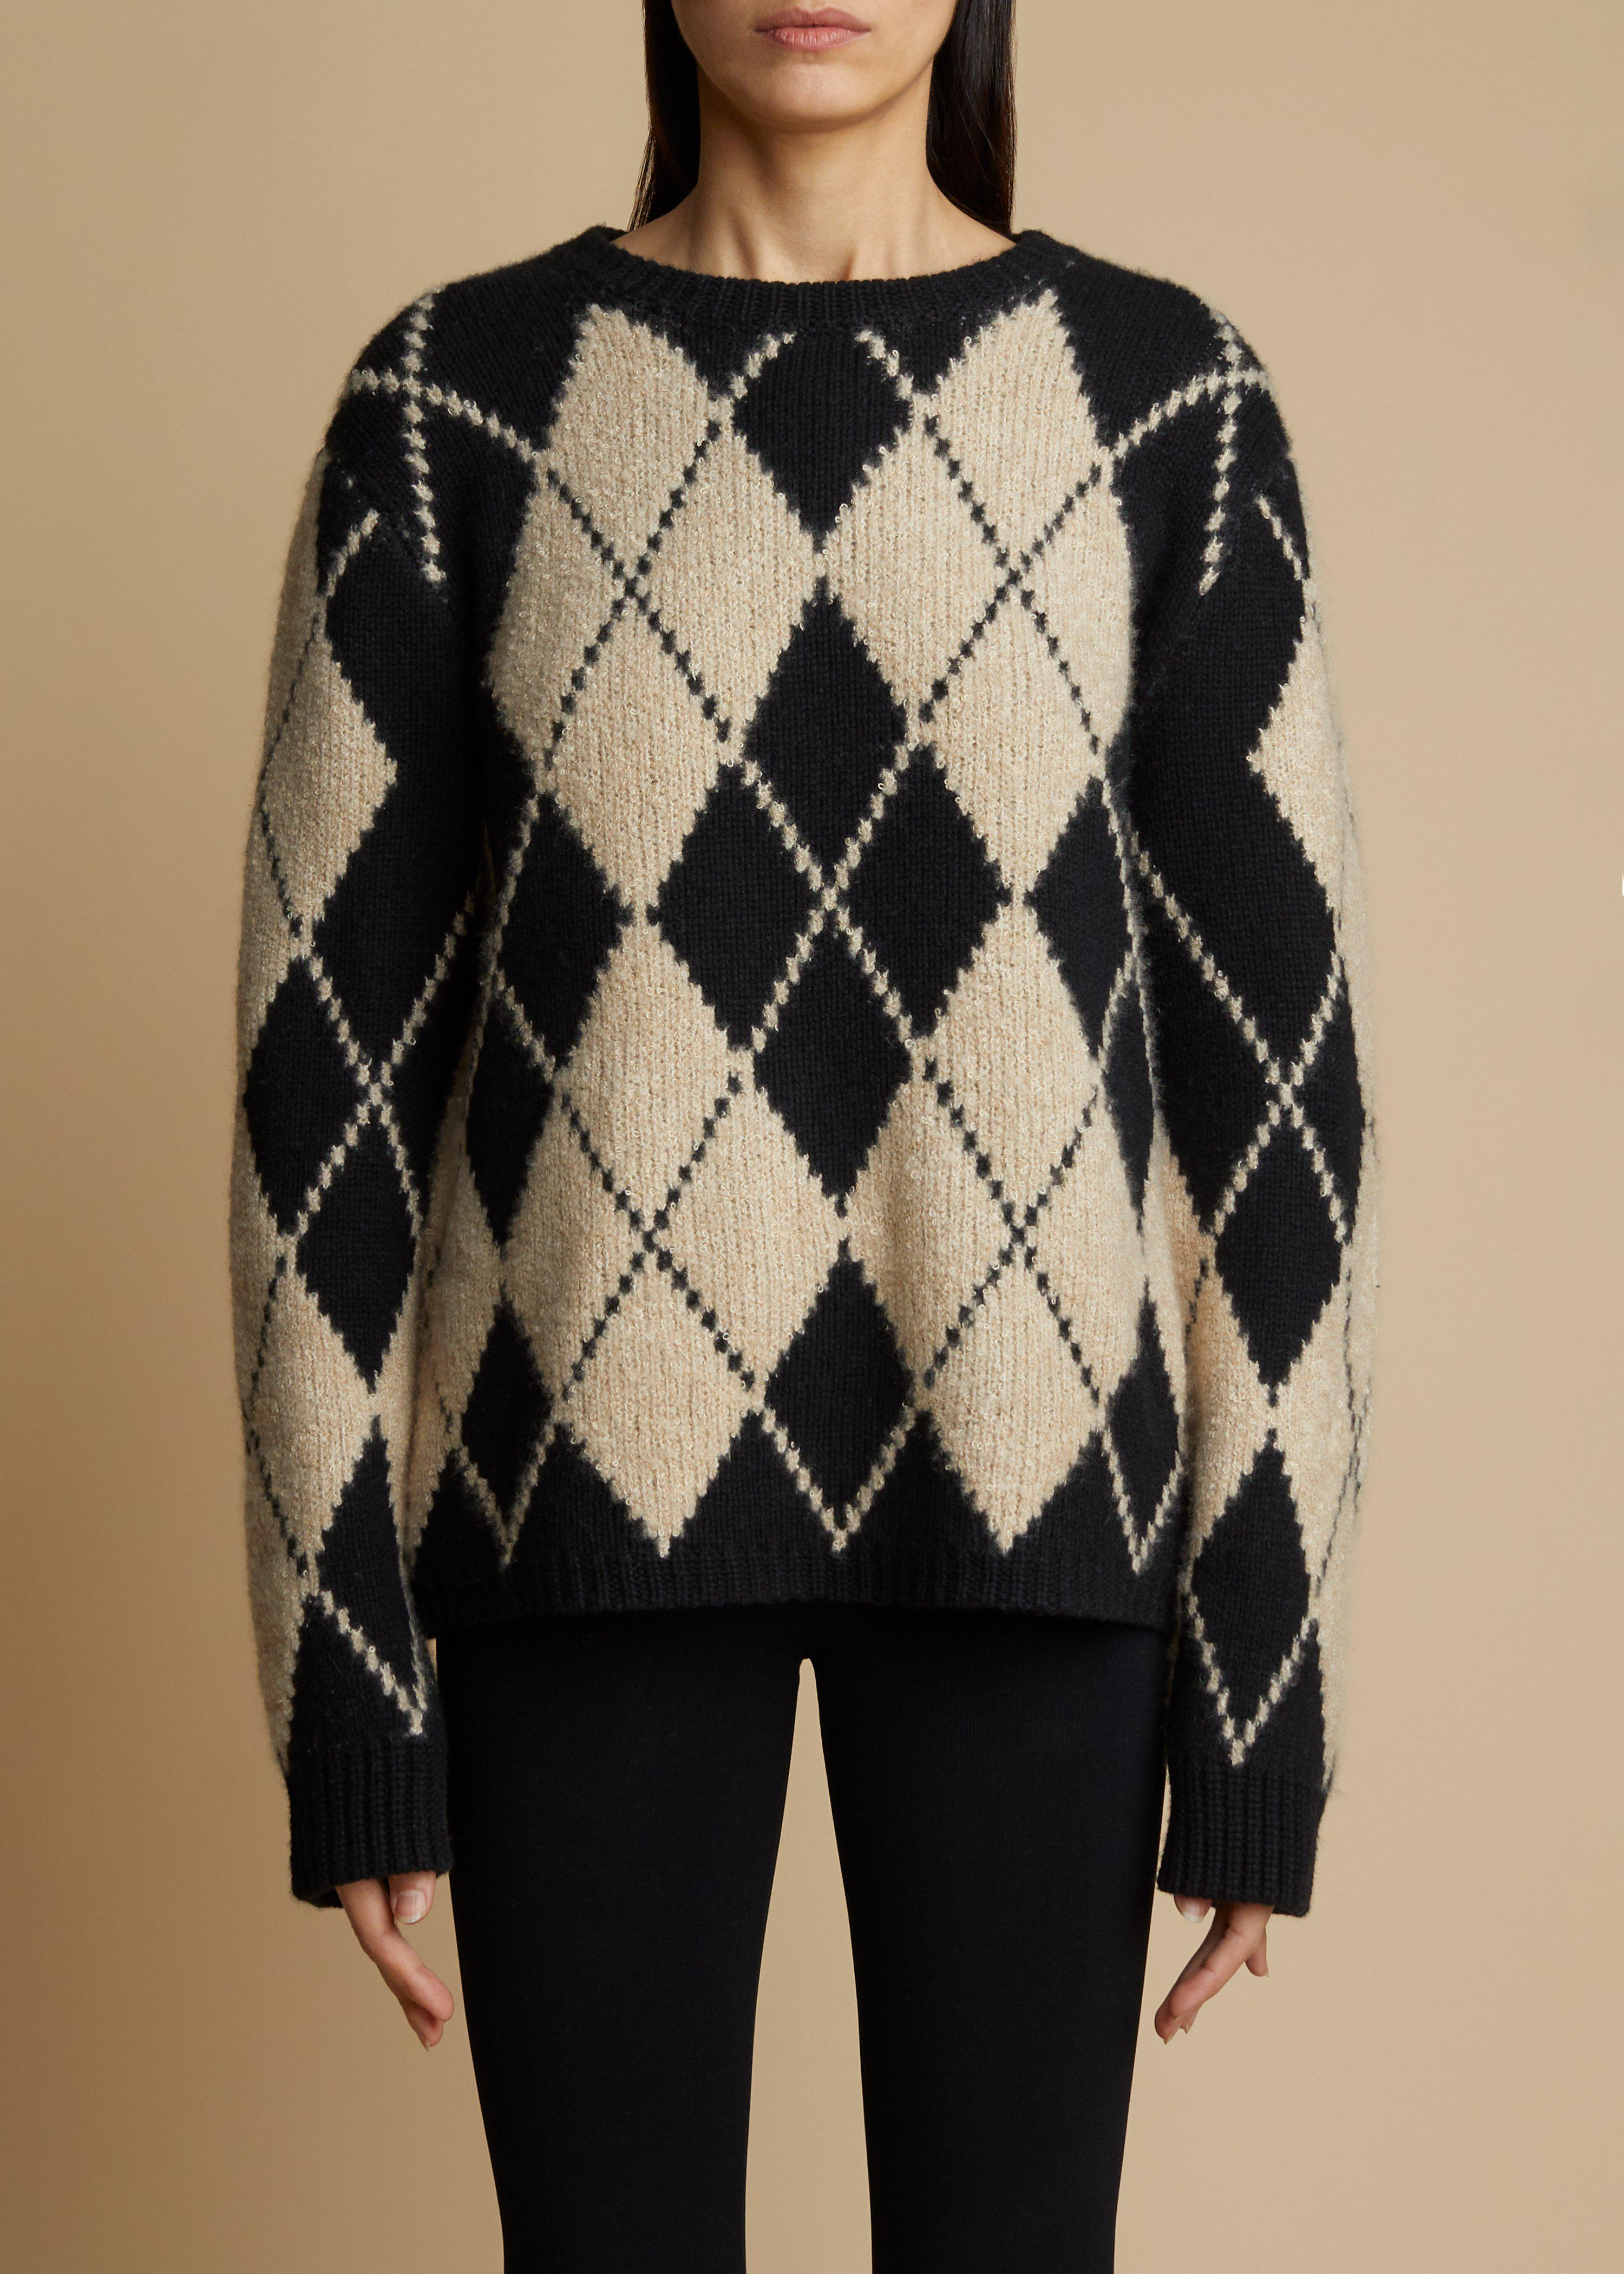 The Siro Sweater in Black and Teddy